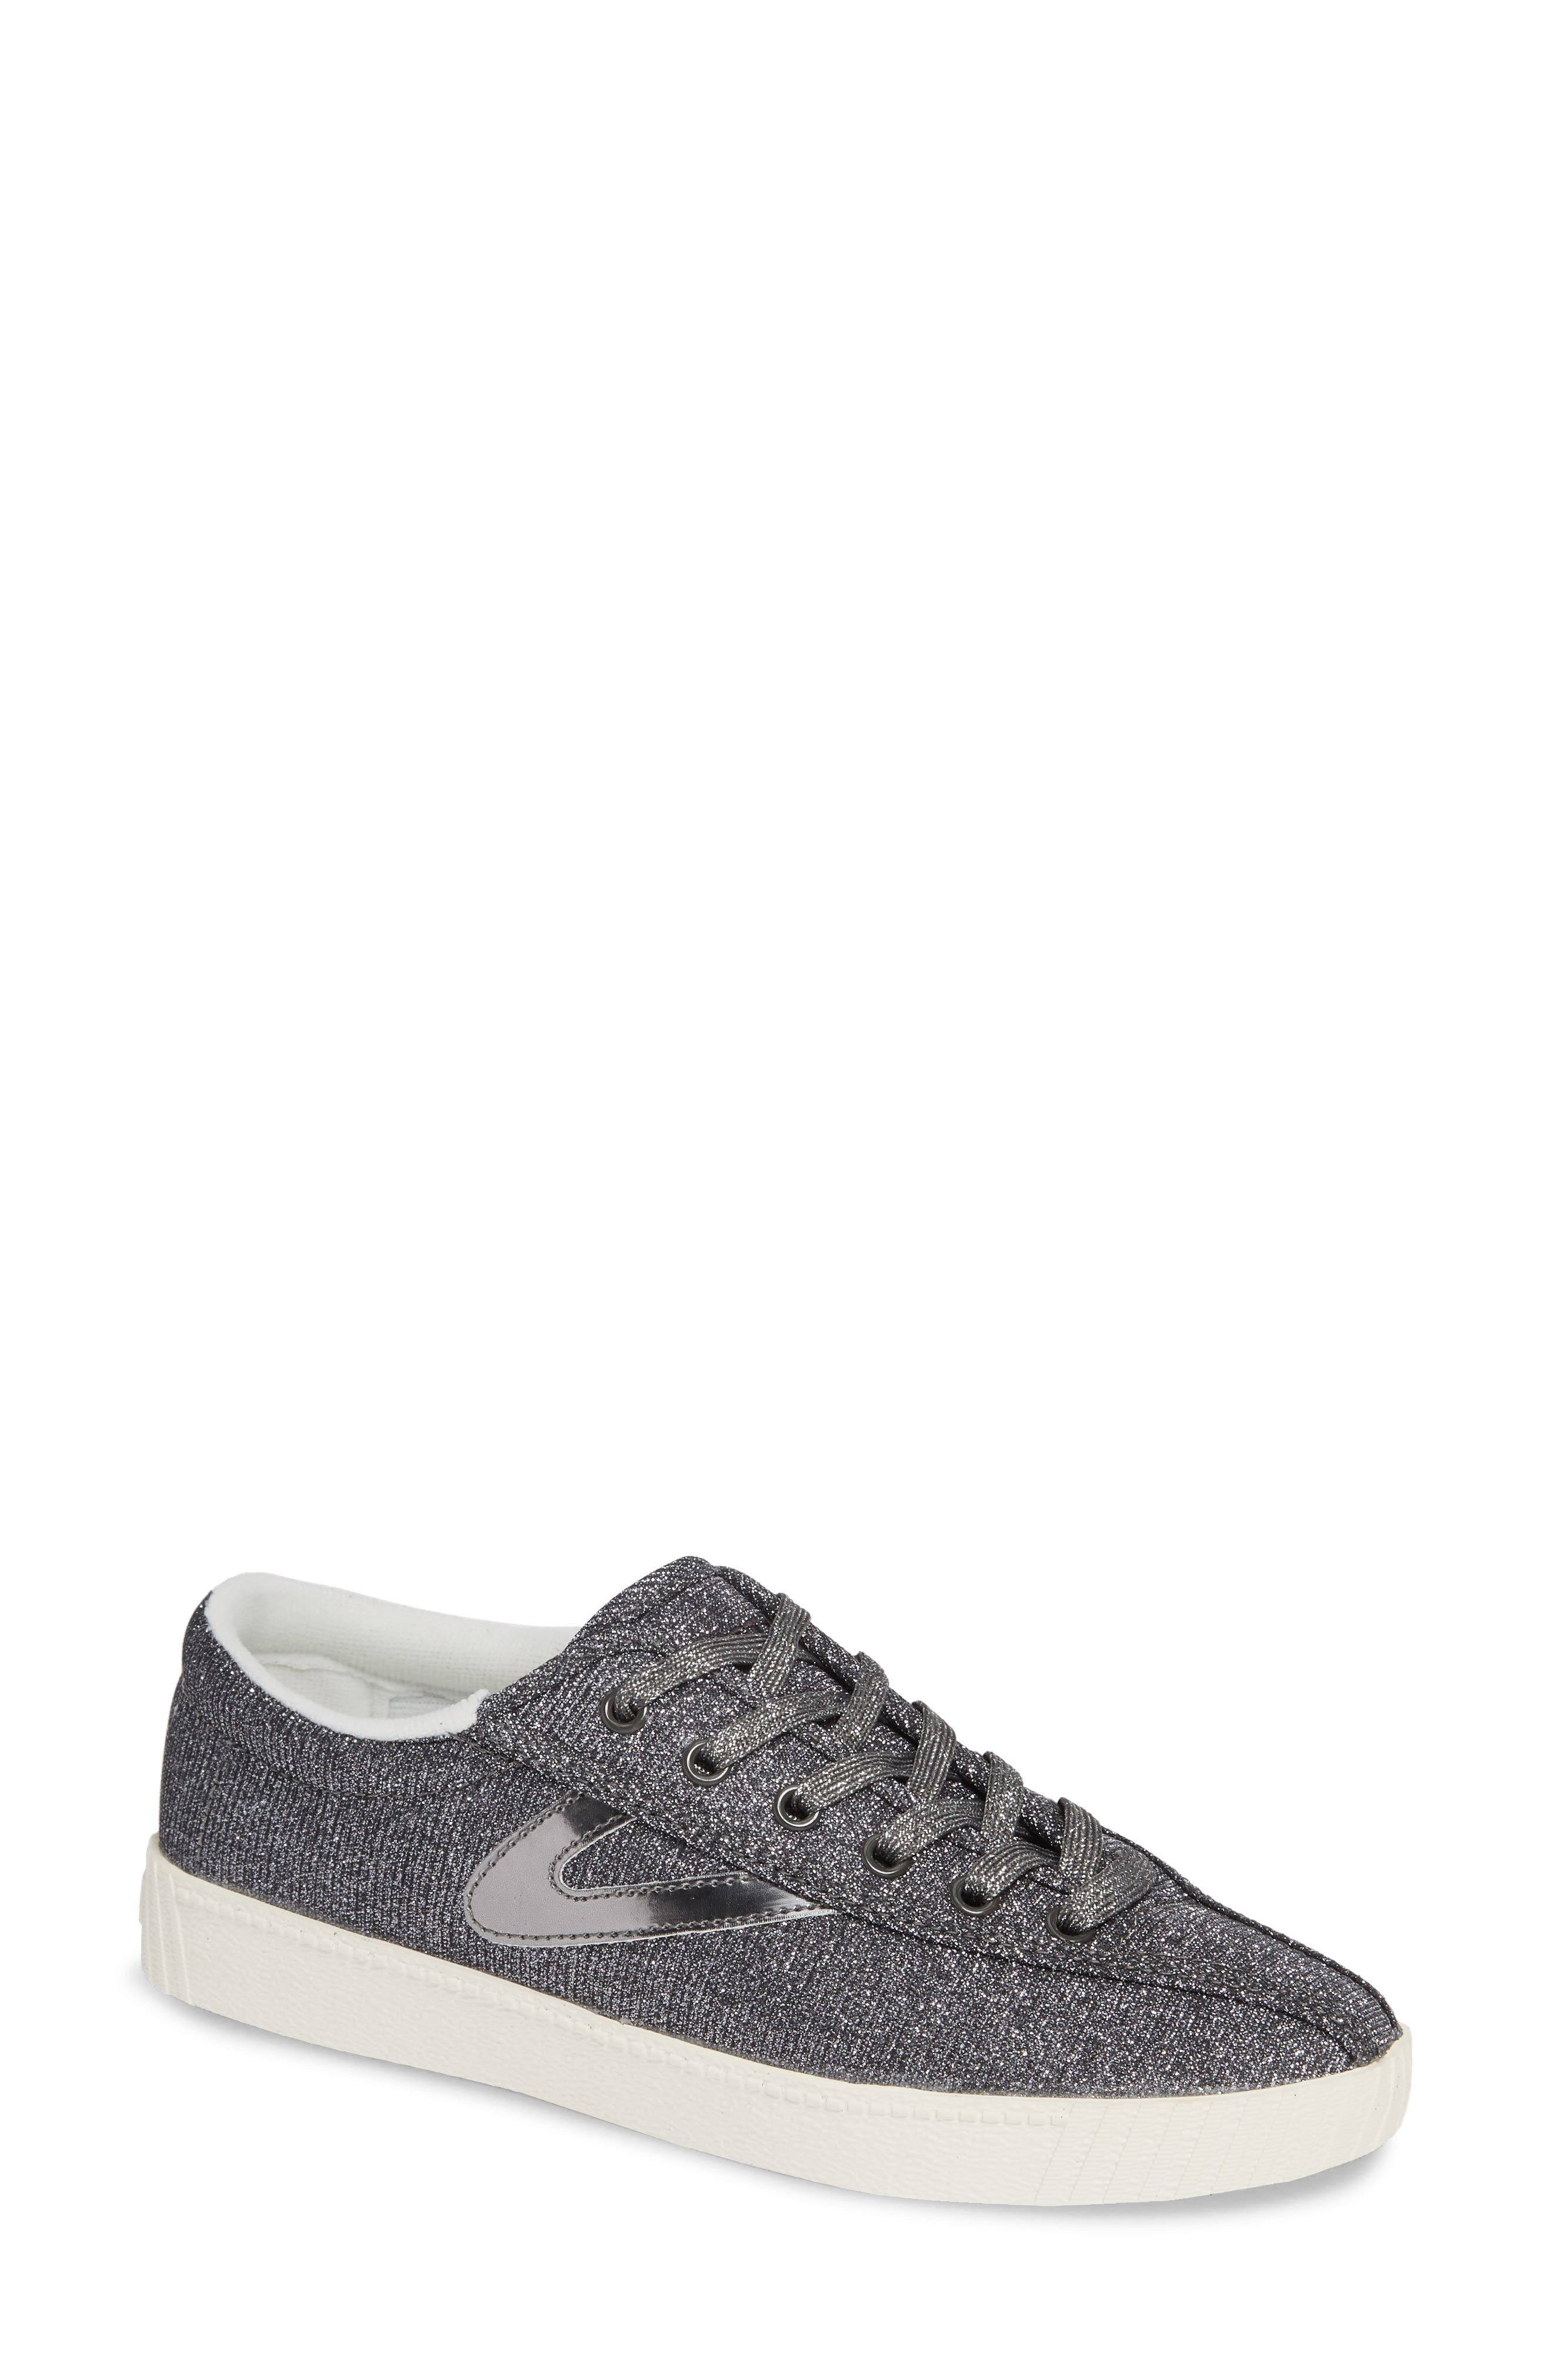 'Nylite' Sneaker,                             Main thumbnail 1, color,                             Pewter/ Pewter